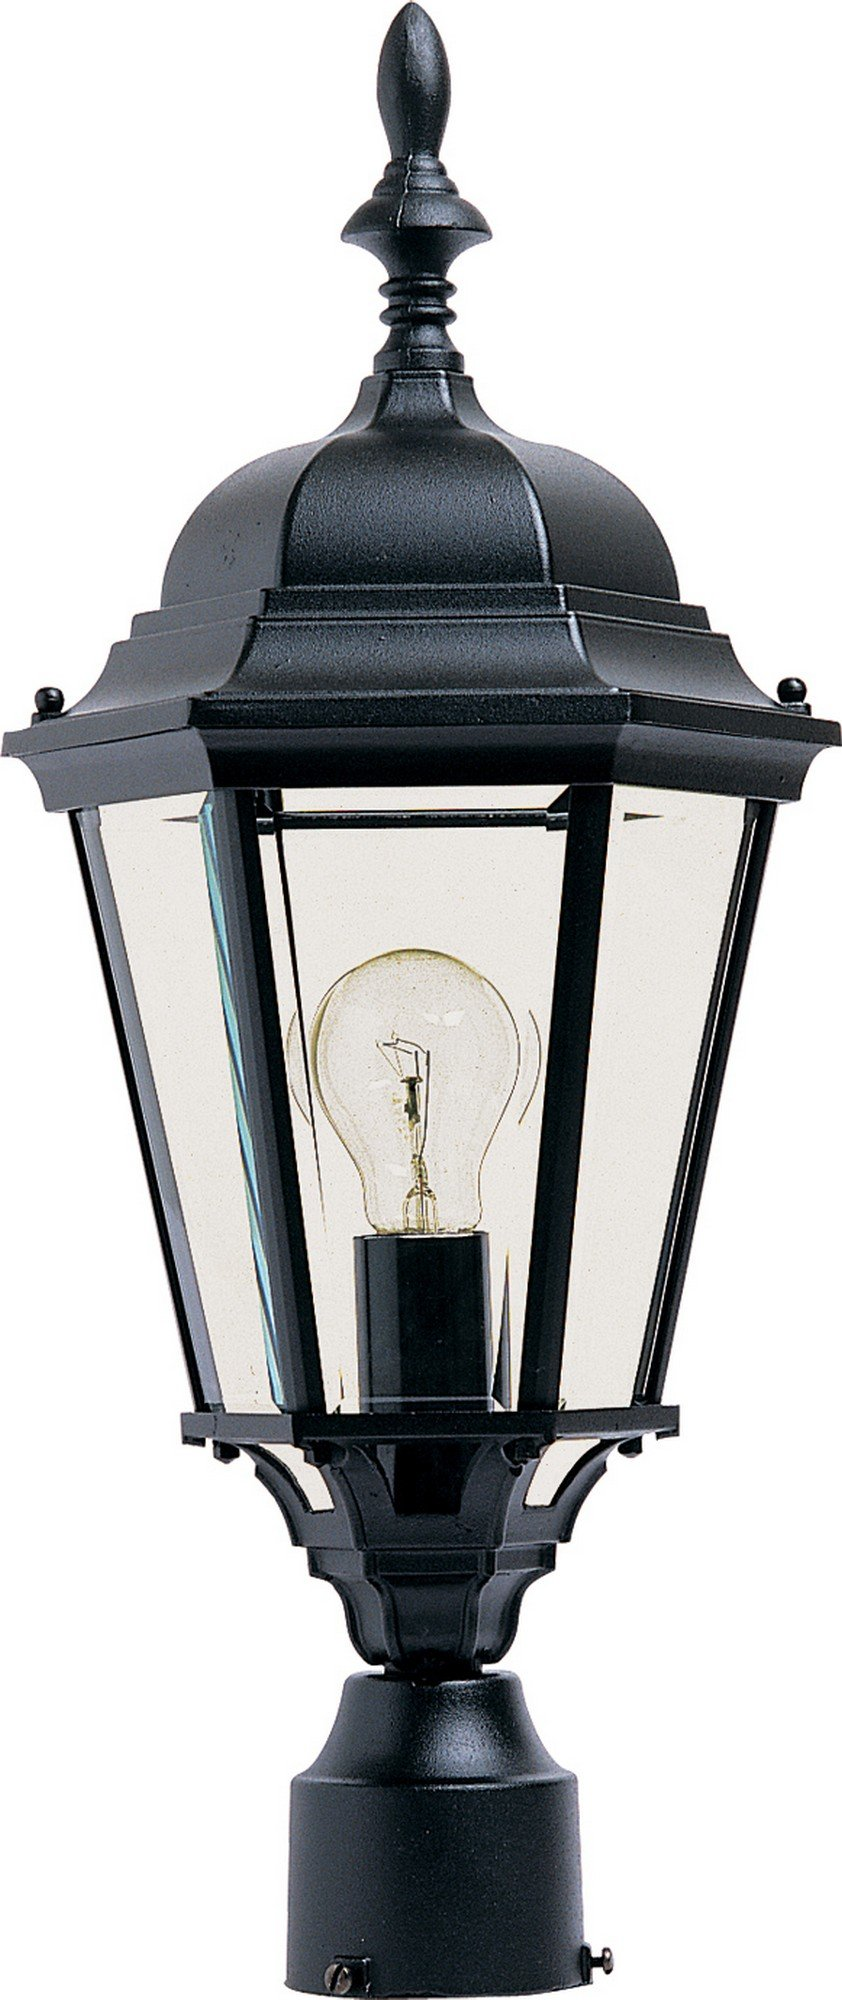 Maxim 1005BK, Westlake Cast Aluminum Post Lamp - 100W Black Outdoor Post Lighting, Incandescent Post Lantern. Lighting Fixtures